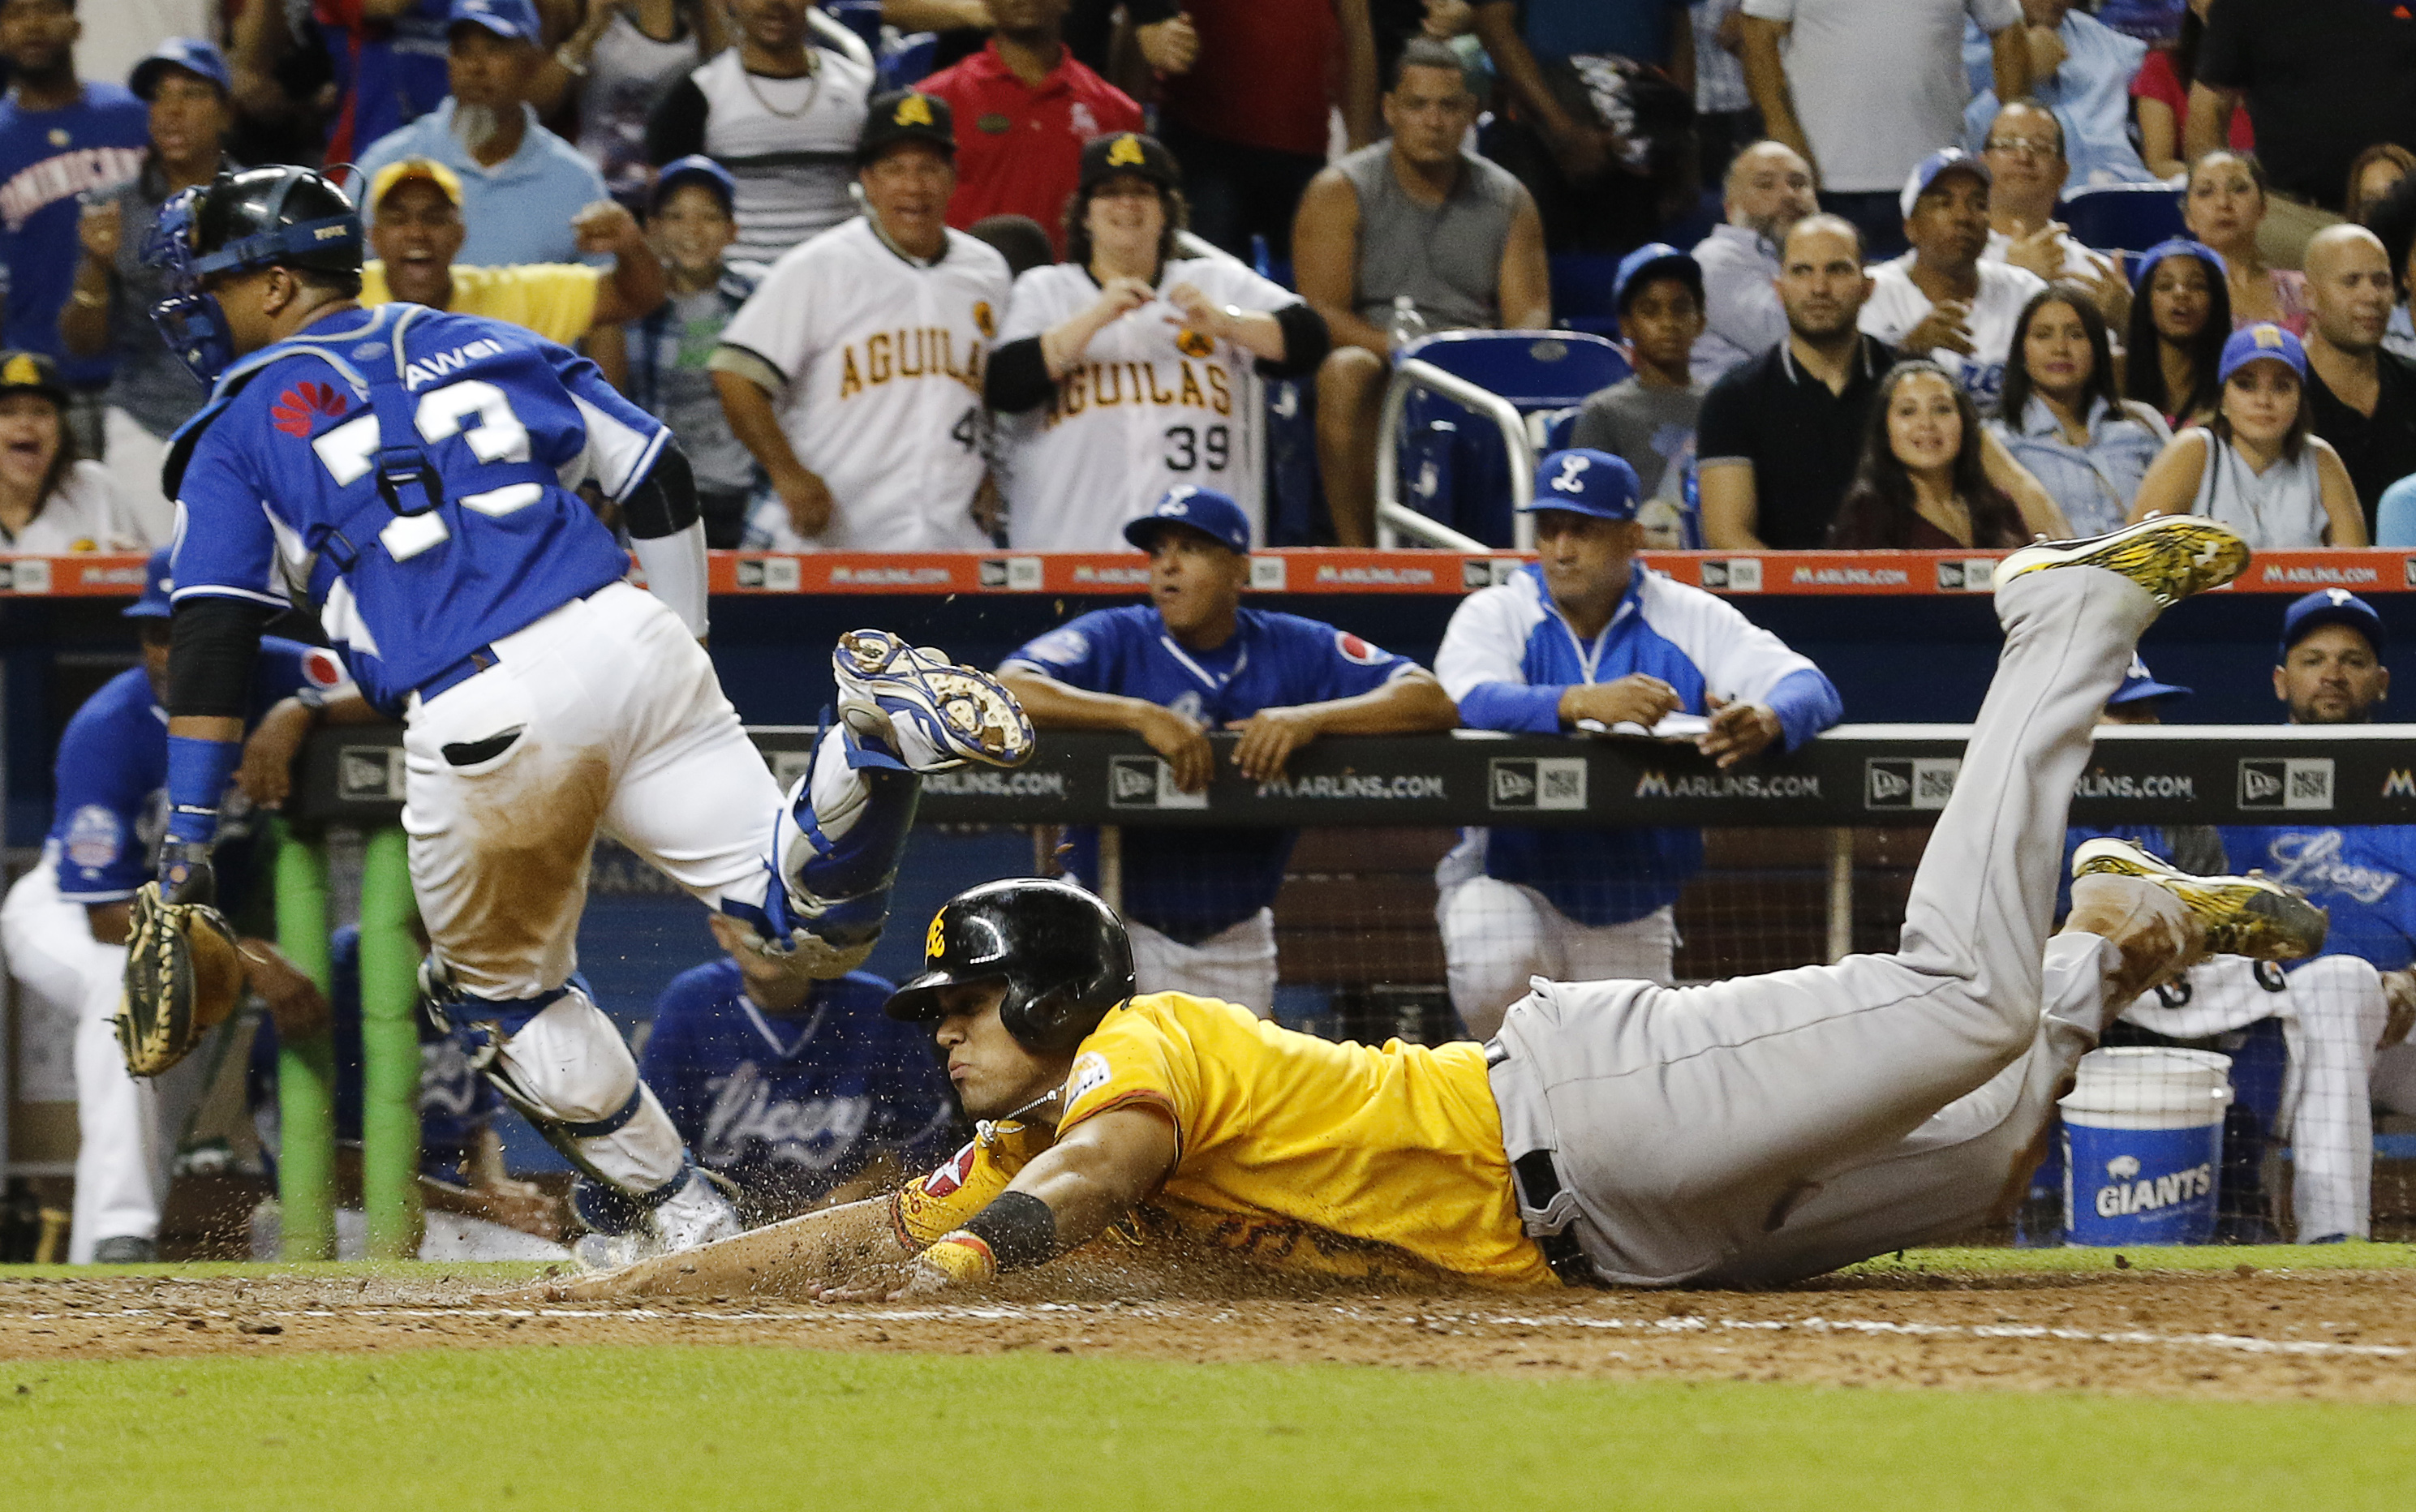 Aguilas' Francisco Pena slides to score as Tigres' catcher Yermin Mercedes cannot handle the throw in the ninth inning during a Serie de las Americas baseball game at Marlins Park in Miami, Saturday, Nov. 21, 2015. (AP Photo/Joe Skipper)